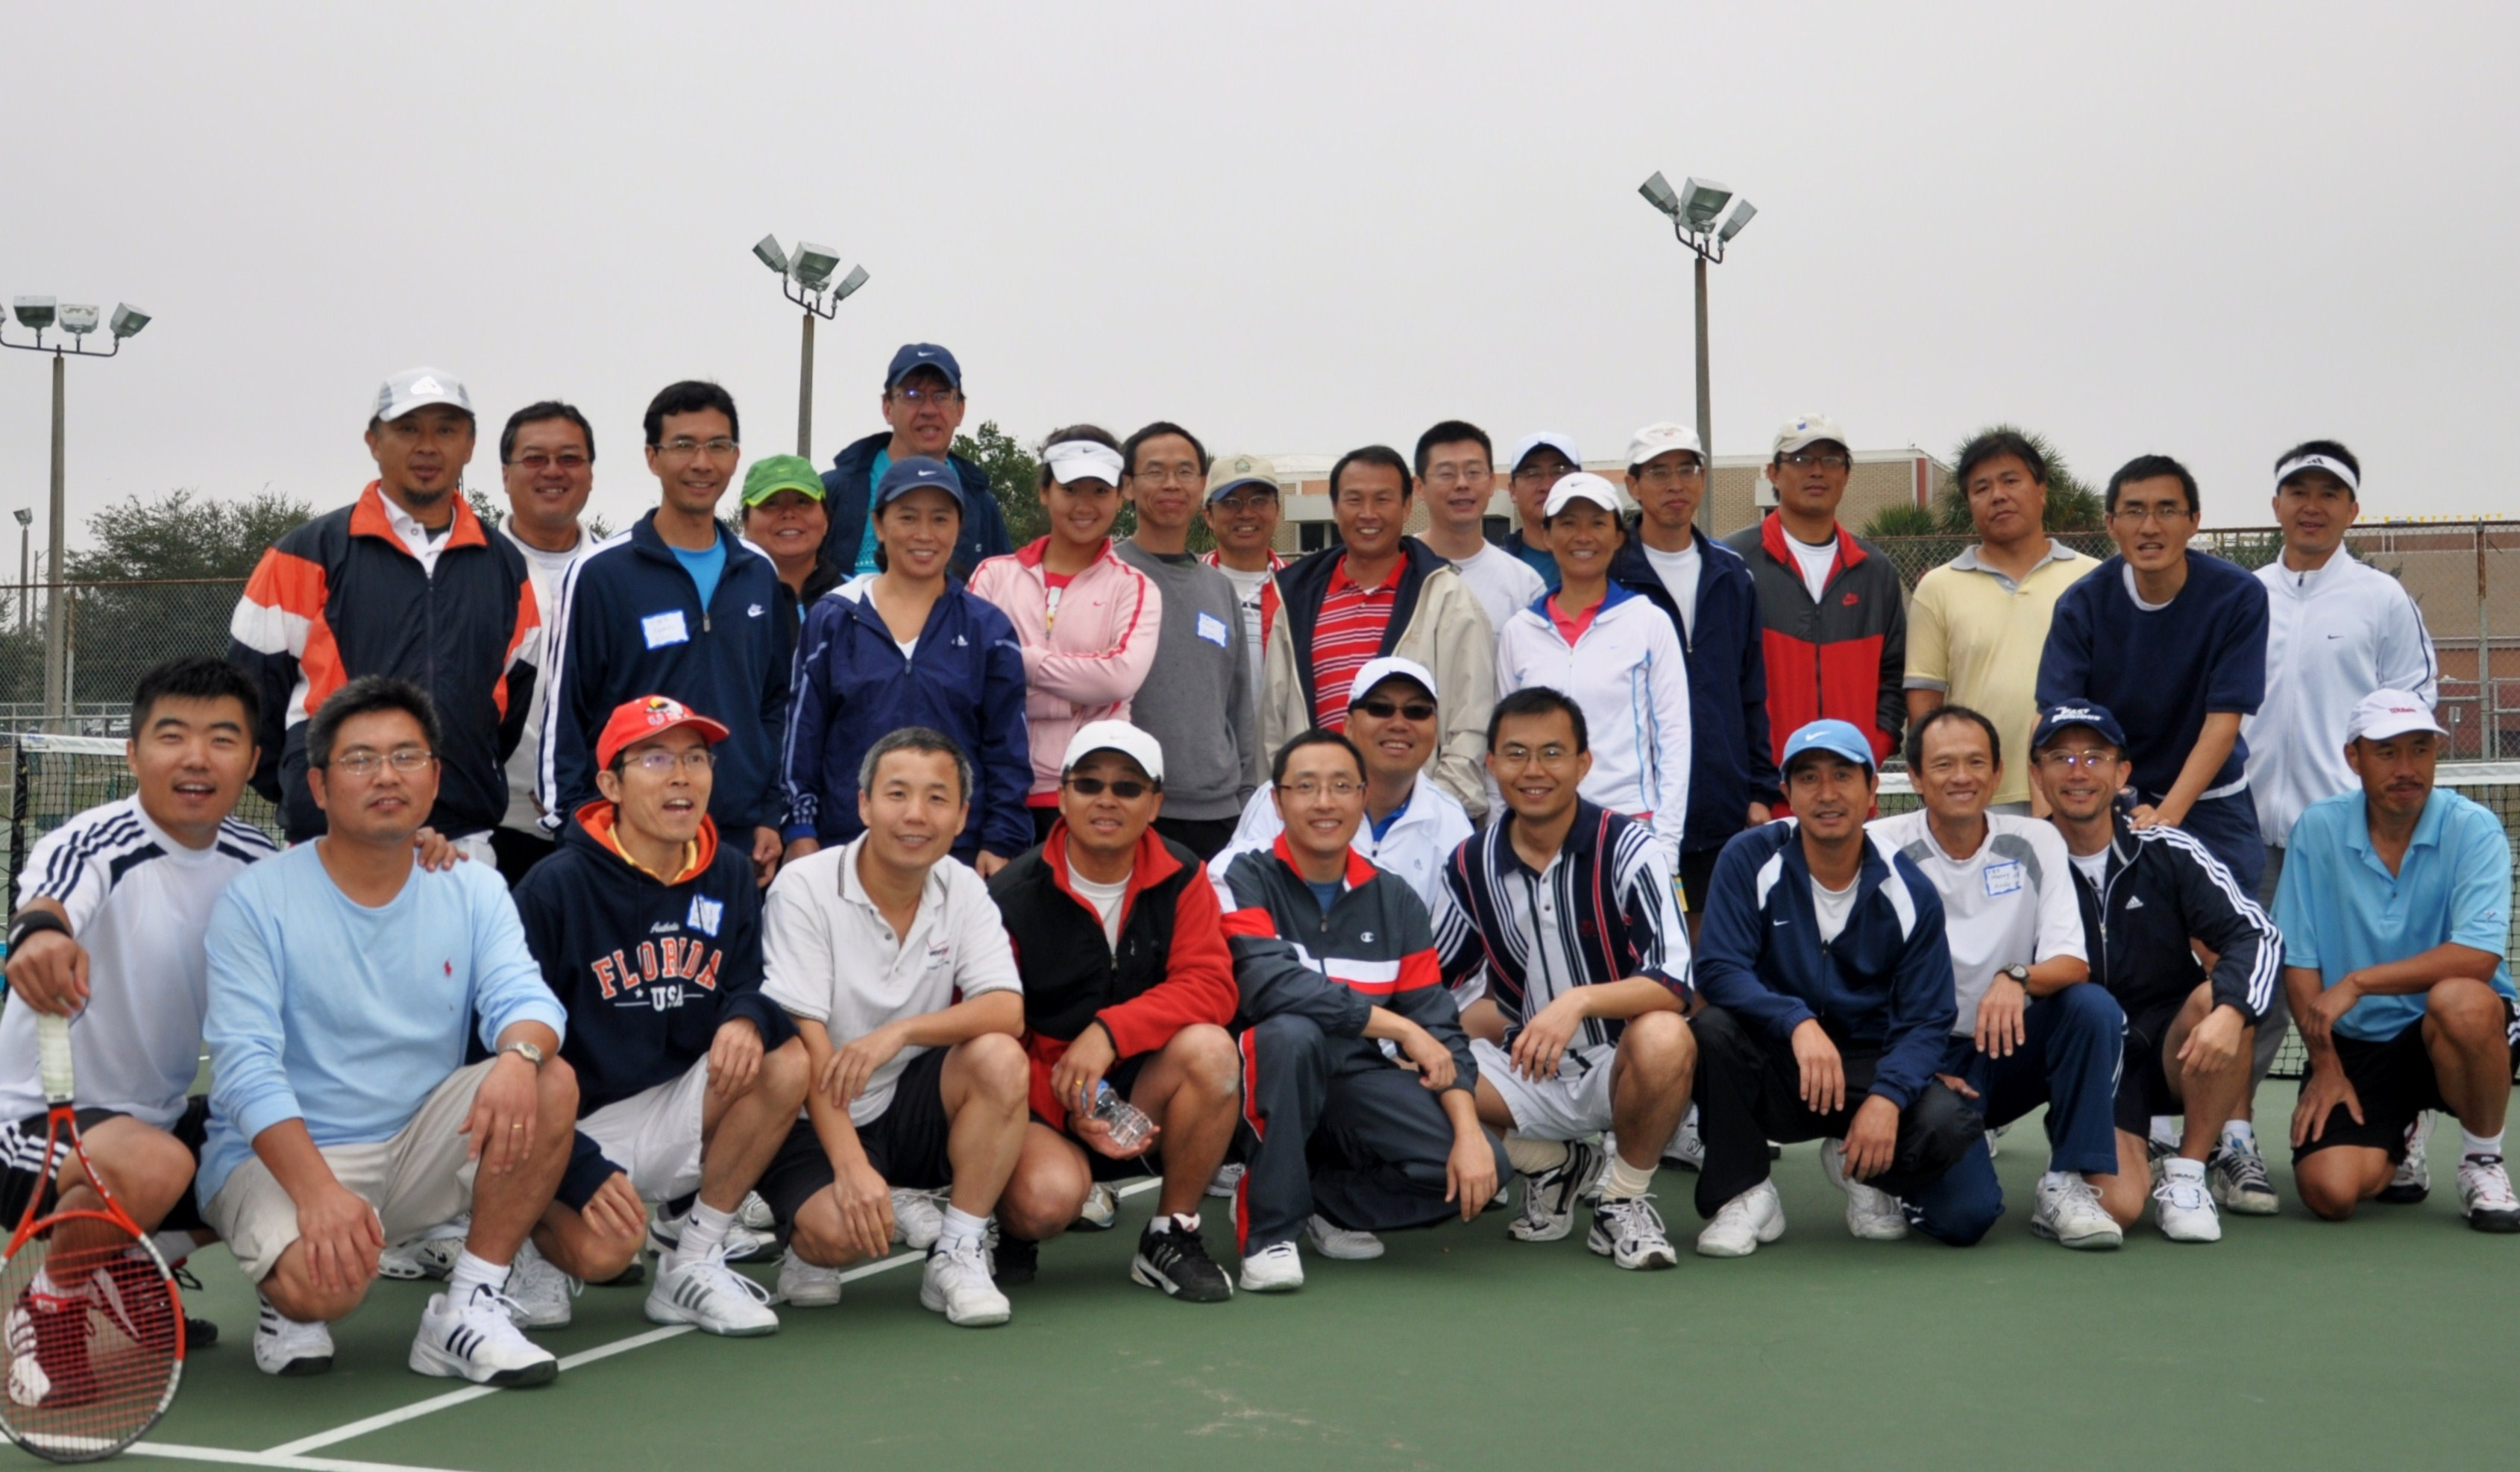 2010tenniscompetition.jpg